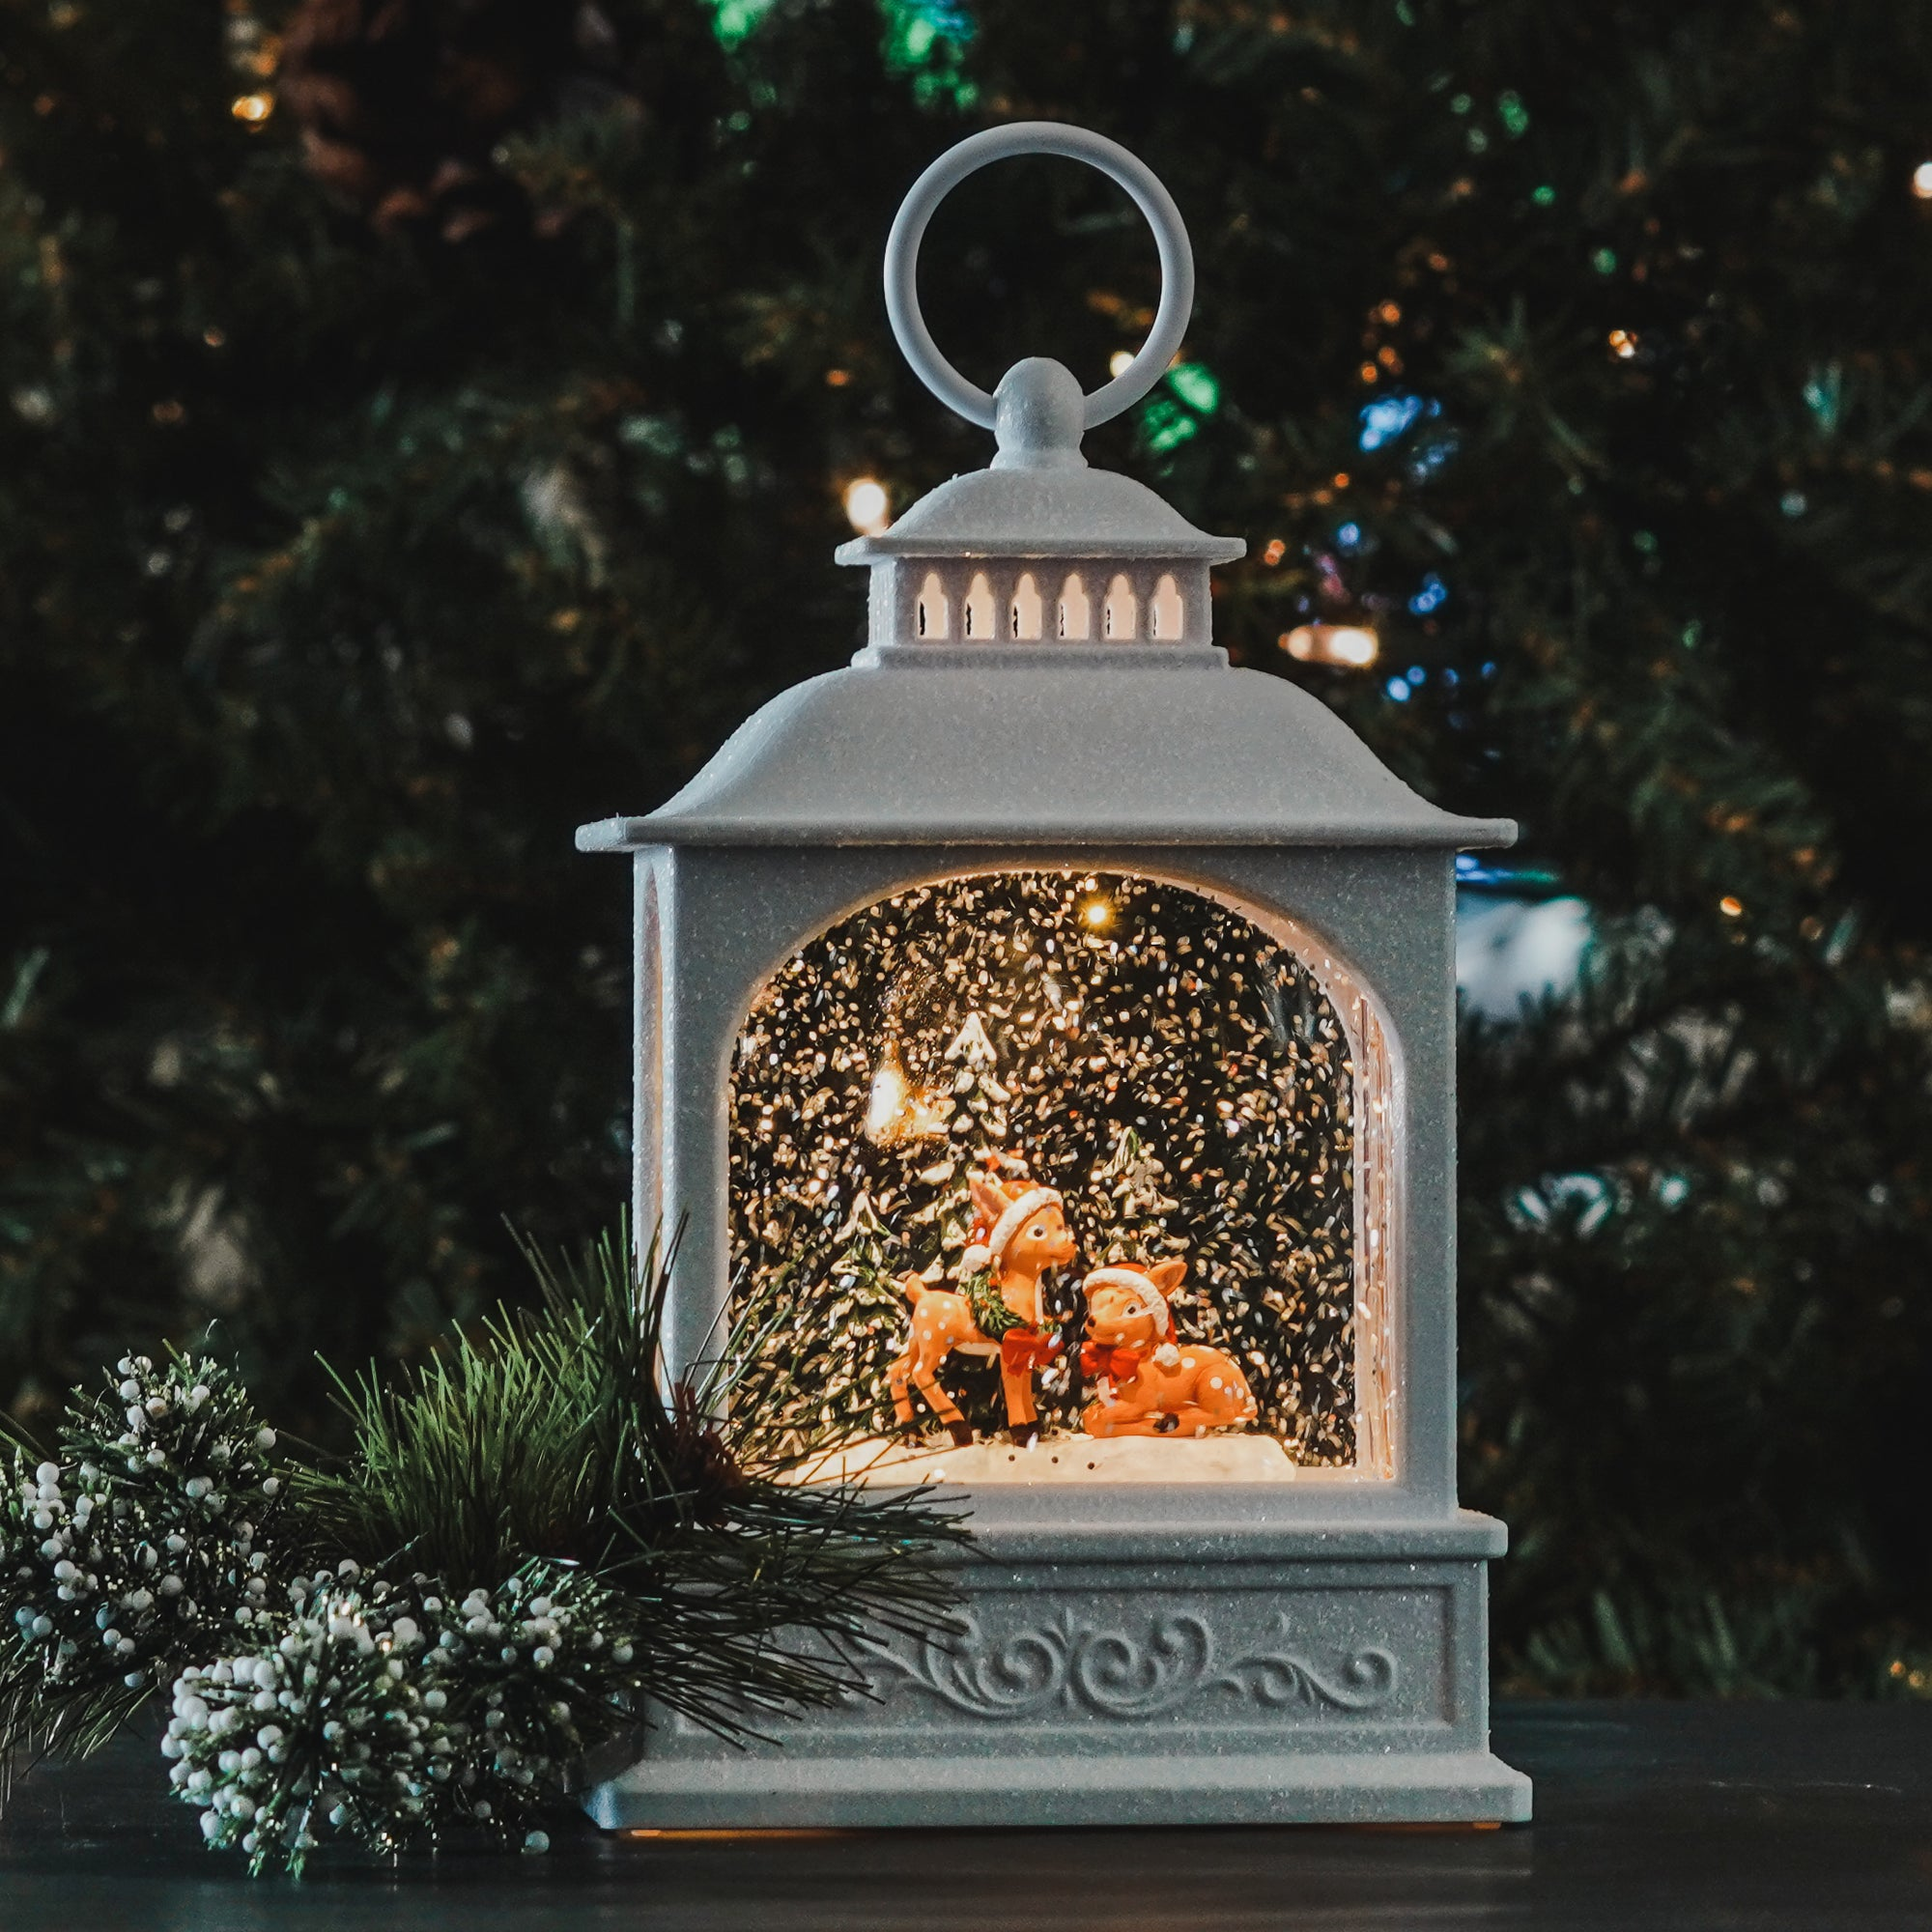 Darling white glitter lantern with 2 Deer inside surrounded by evergreen trees. 8.25 Inch White Glitter picture window water lantern featuring a Christmas Scene, with swirling glitter. A must have addition to your Holiday traditions.